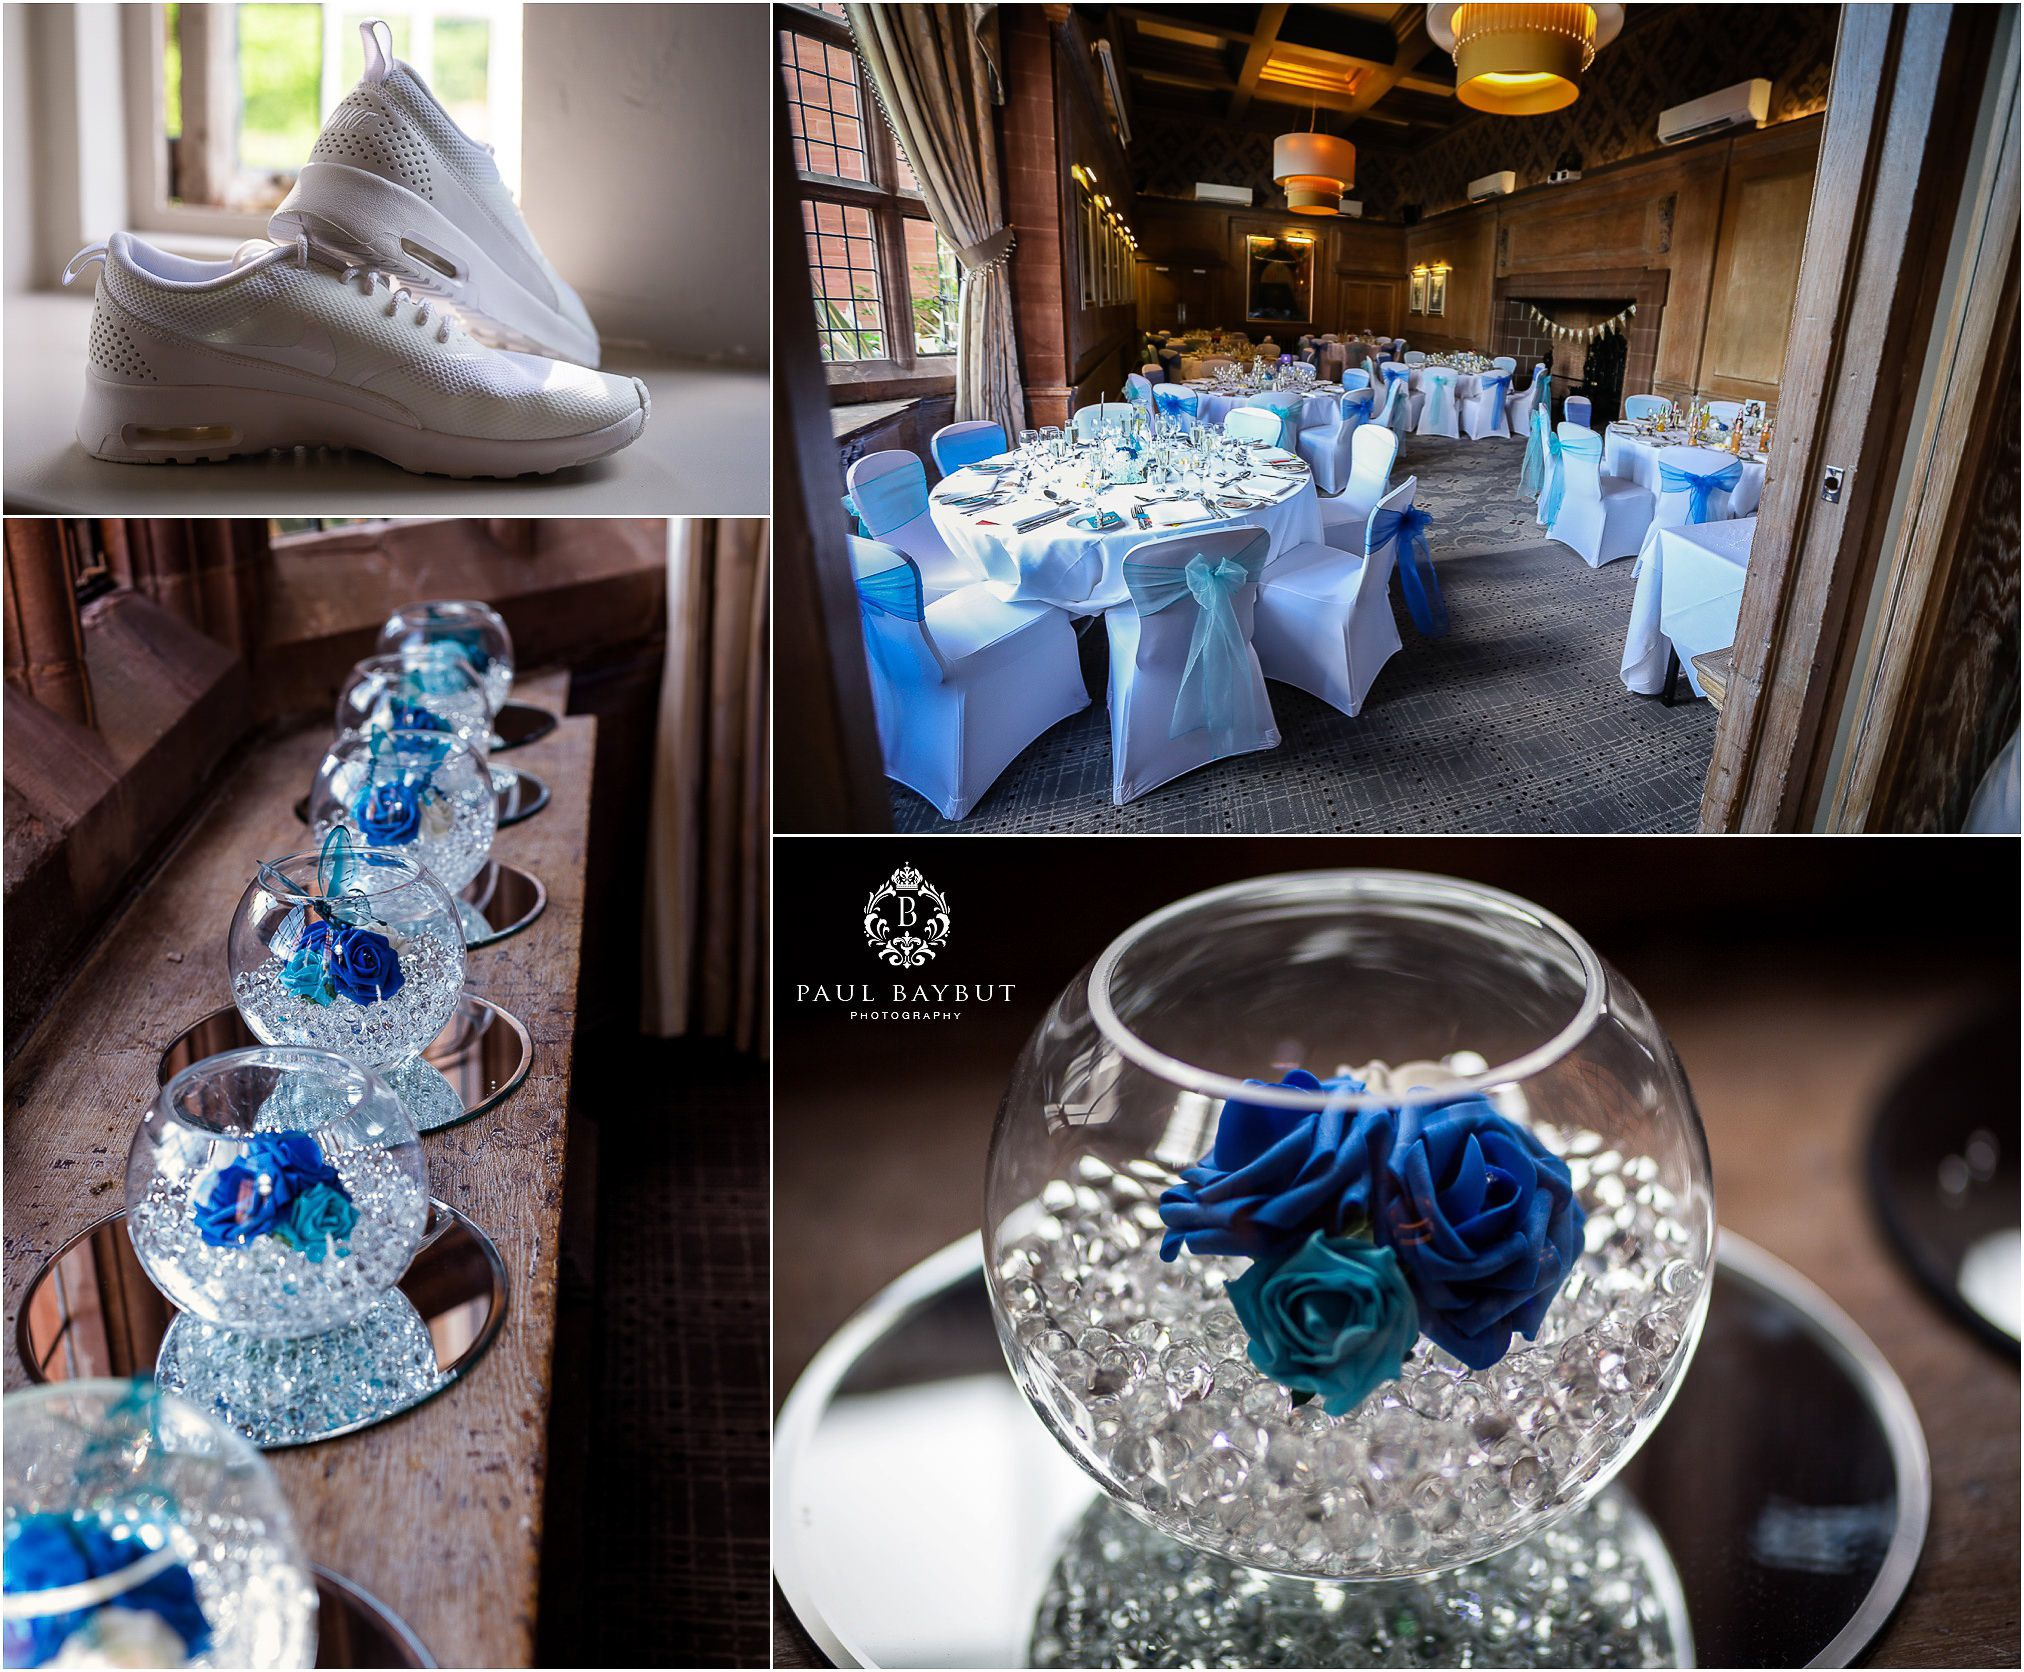 Wedding breakfast room table details with chairs and decorative bowls